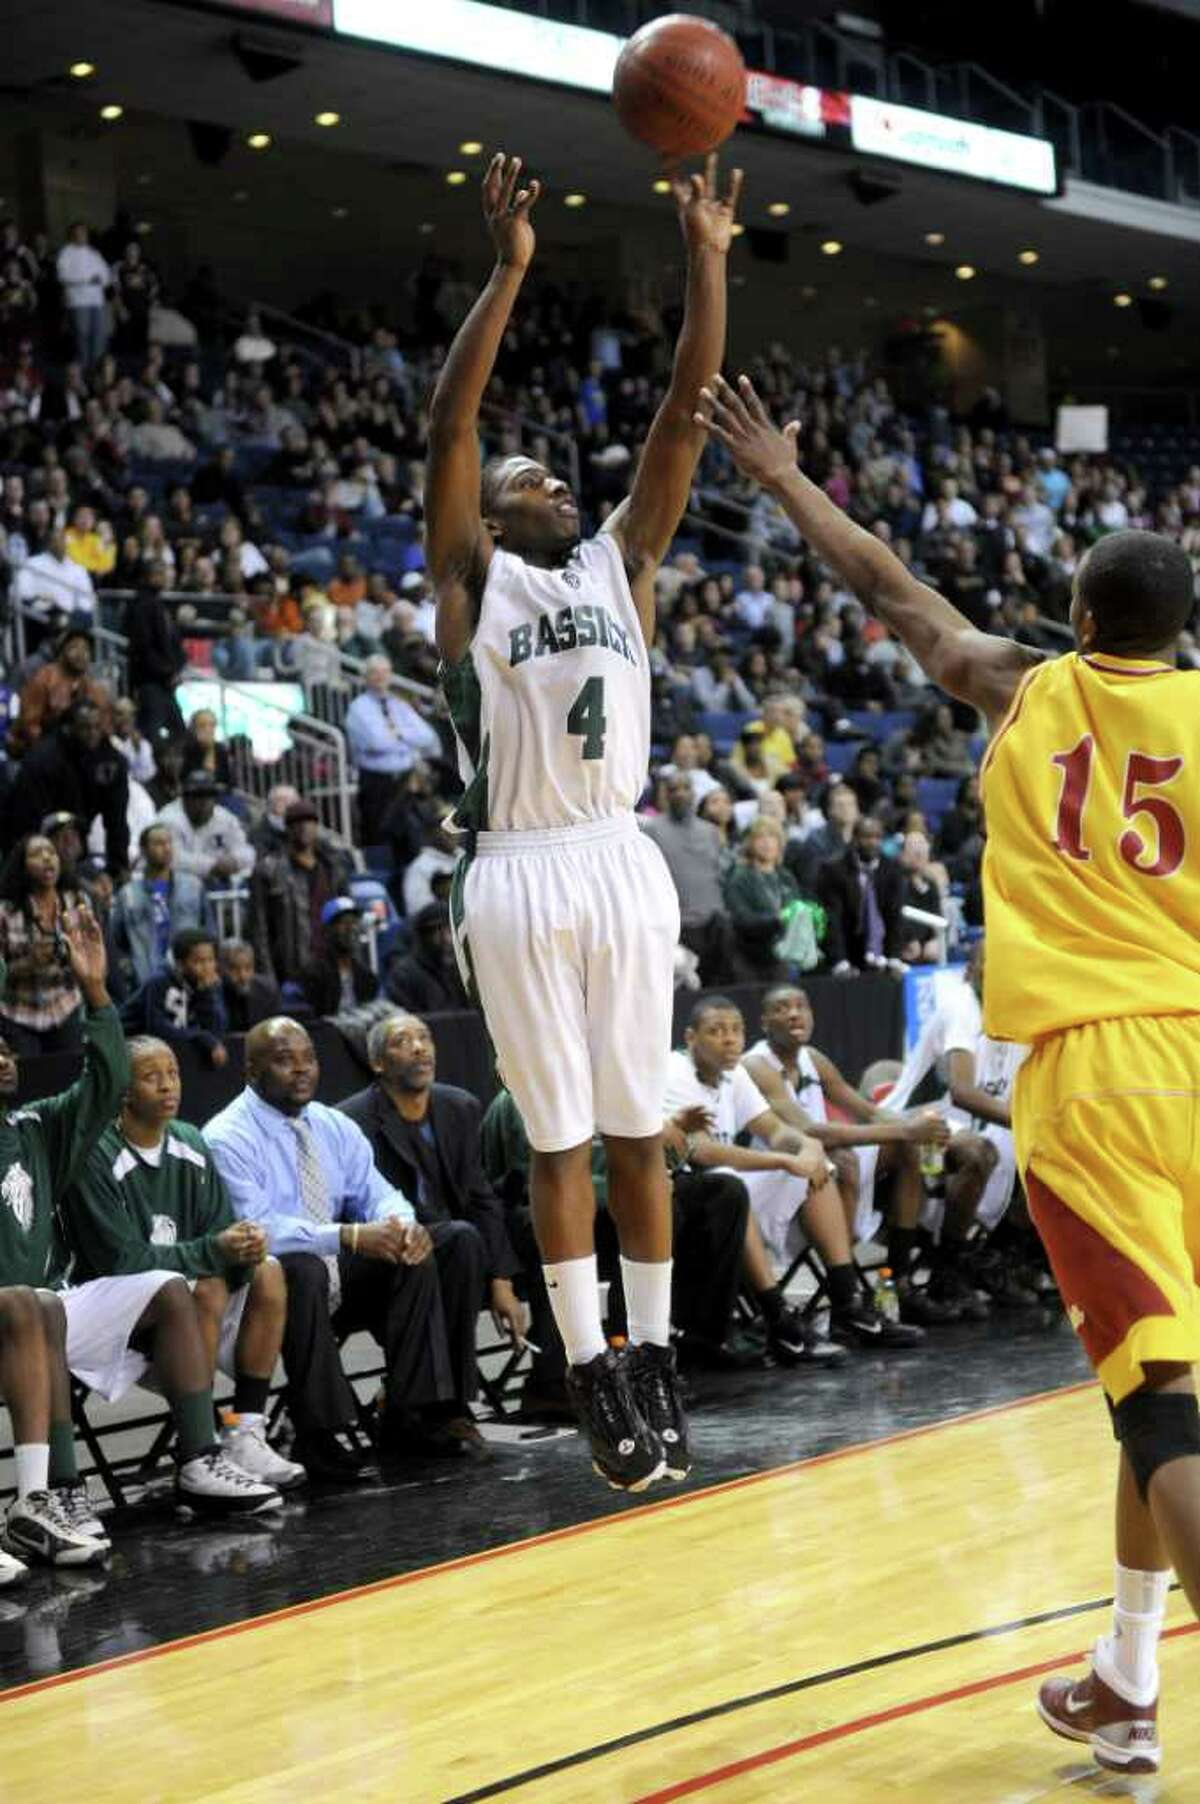 St. Joseph plays against Bassick High School during Thursday's game at Webster Bank Arena at Harbor Yard on February 17, 2011.